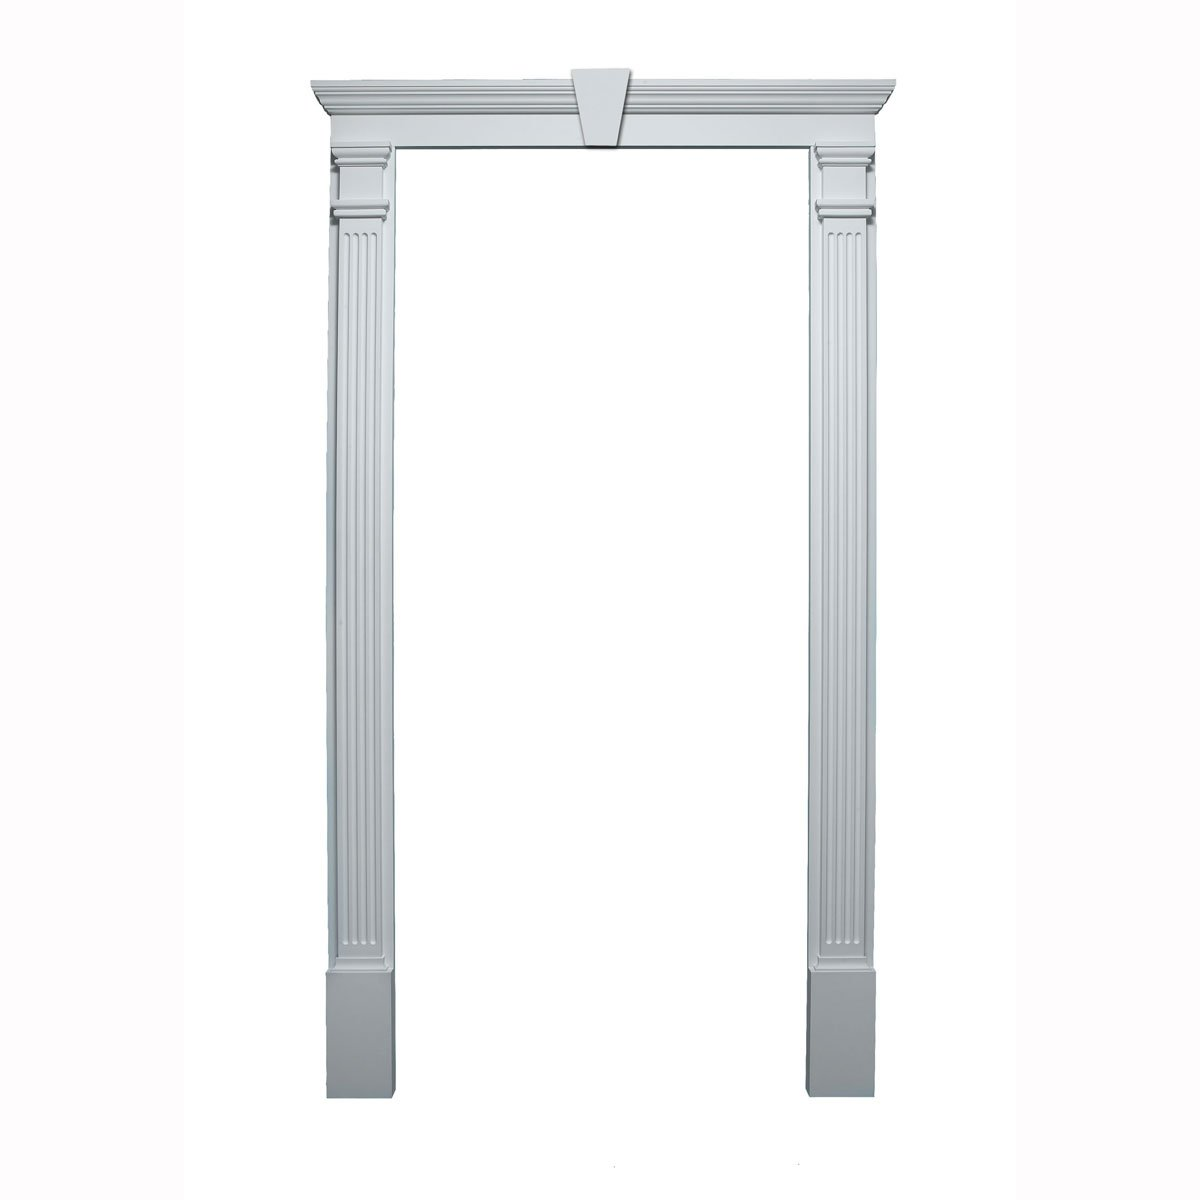 Fypon 20020 Door Trim Kit with Crosshead, Pilaster & Keystone, for Door Sizes 36''W - 40''W x 80''H - 90''H by Fypon